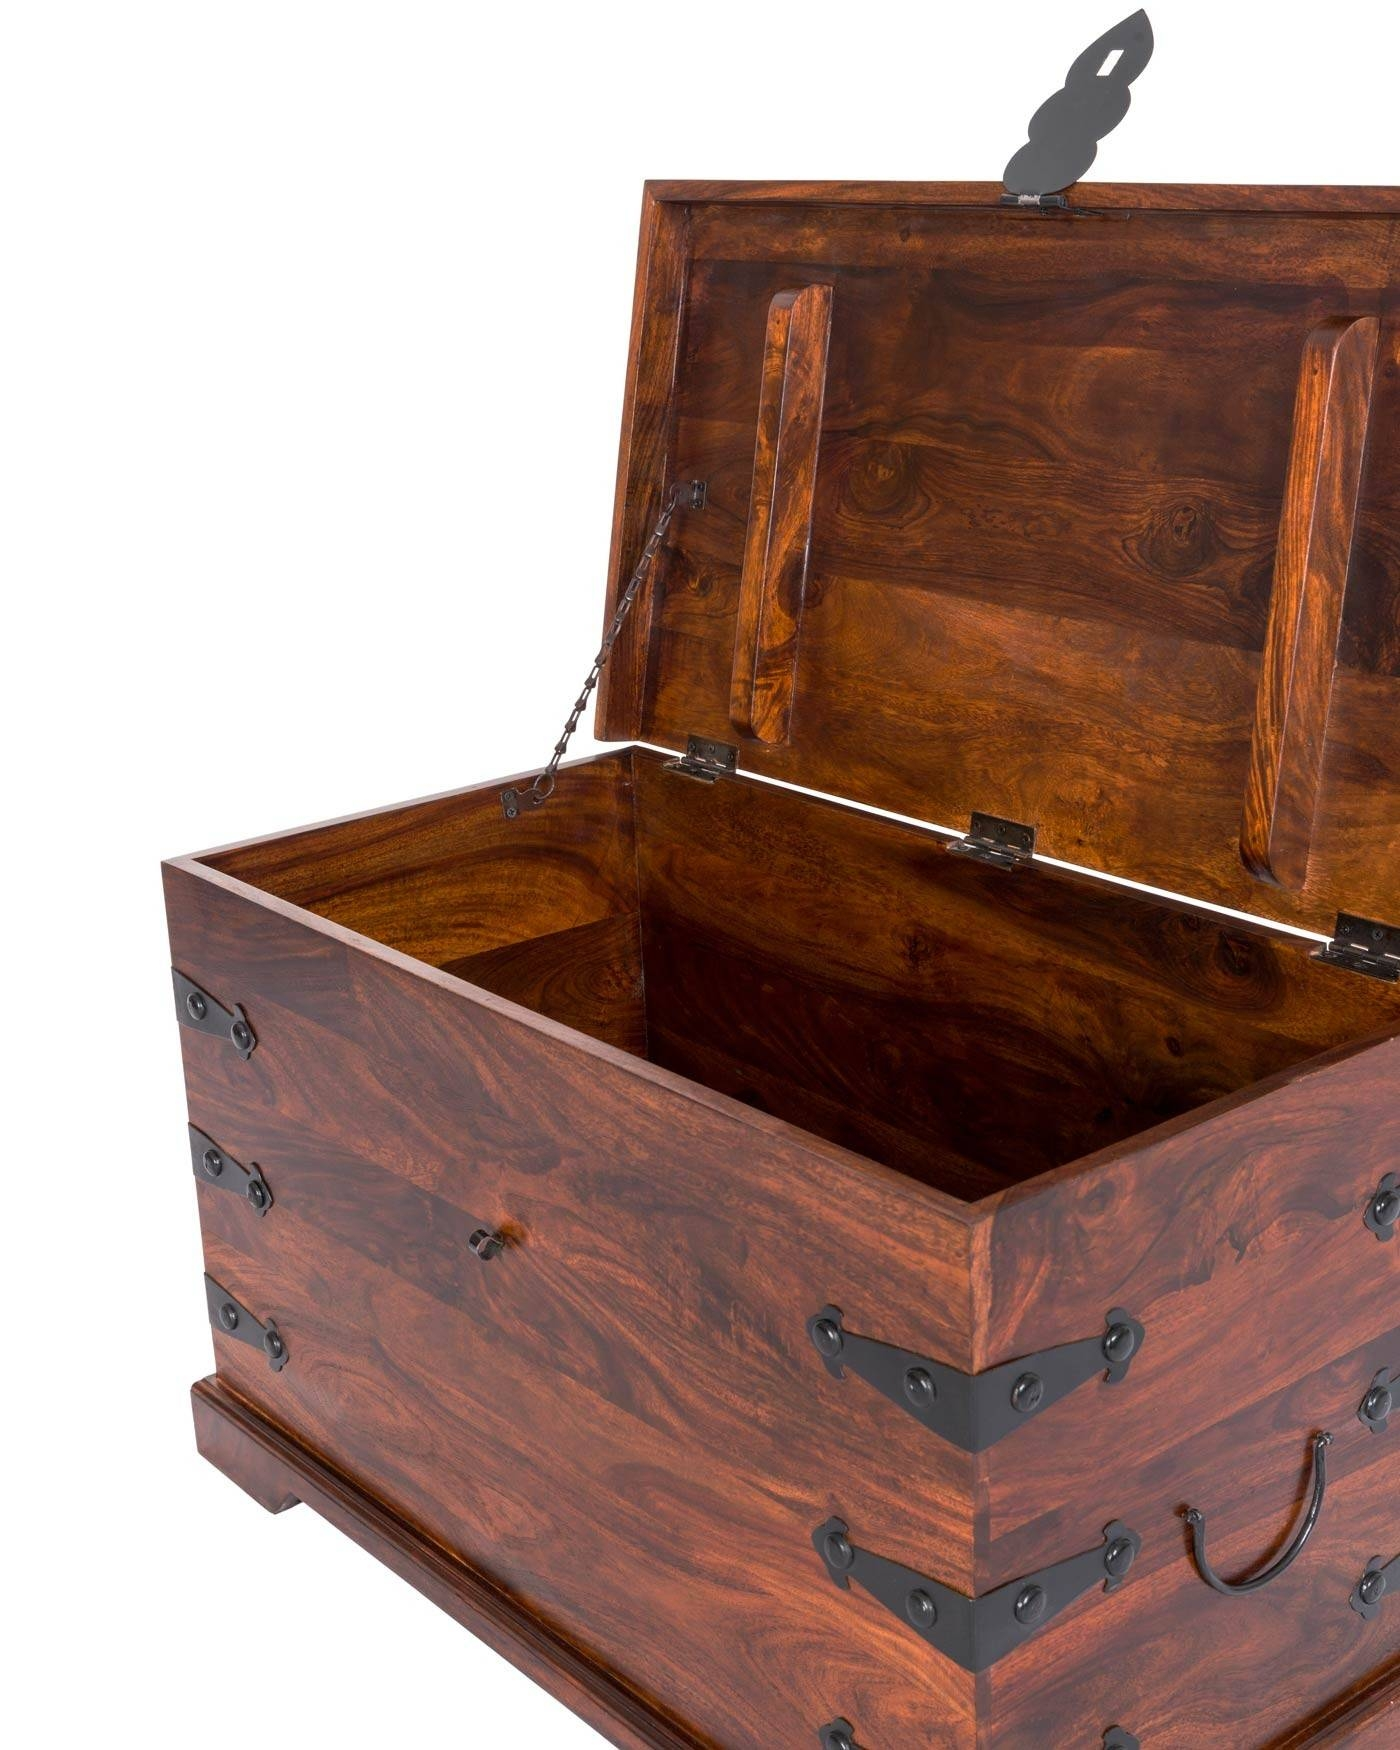 Trunk Box Coffee Table: 2019 Best Of Blanket Box Coffee Tables